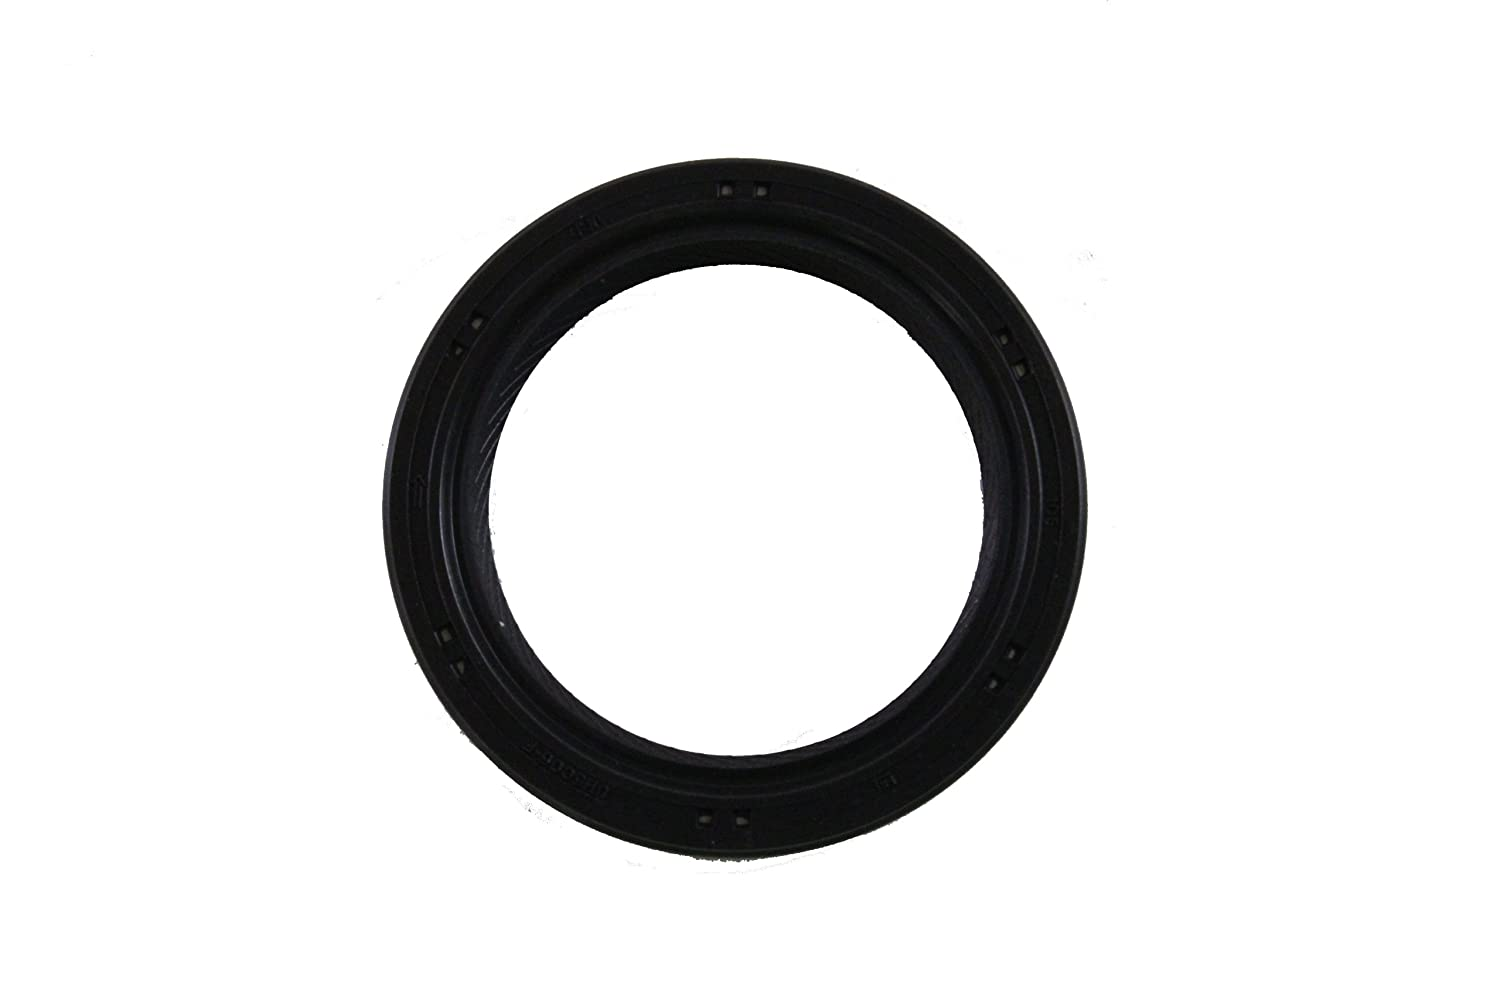 Genuine Acura Parts 91213-R70-A02 Oil Seal